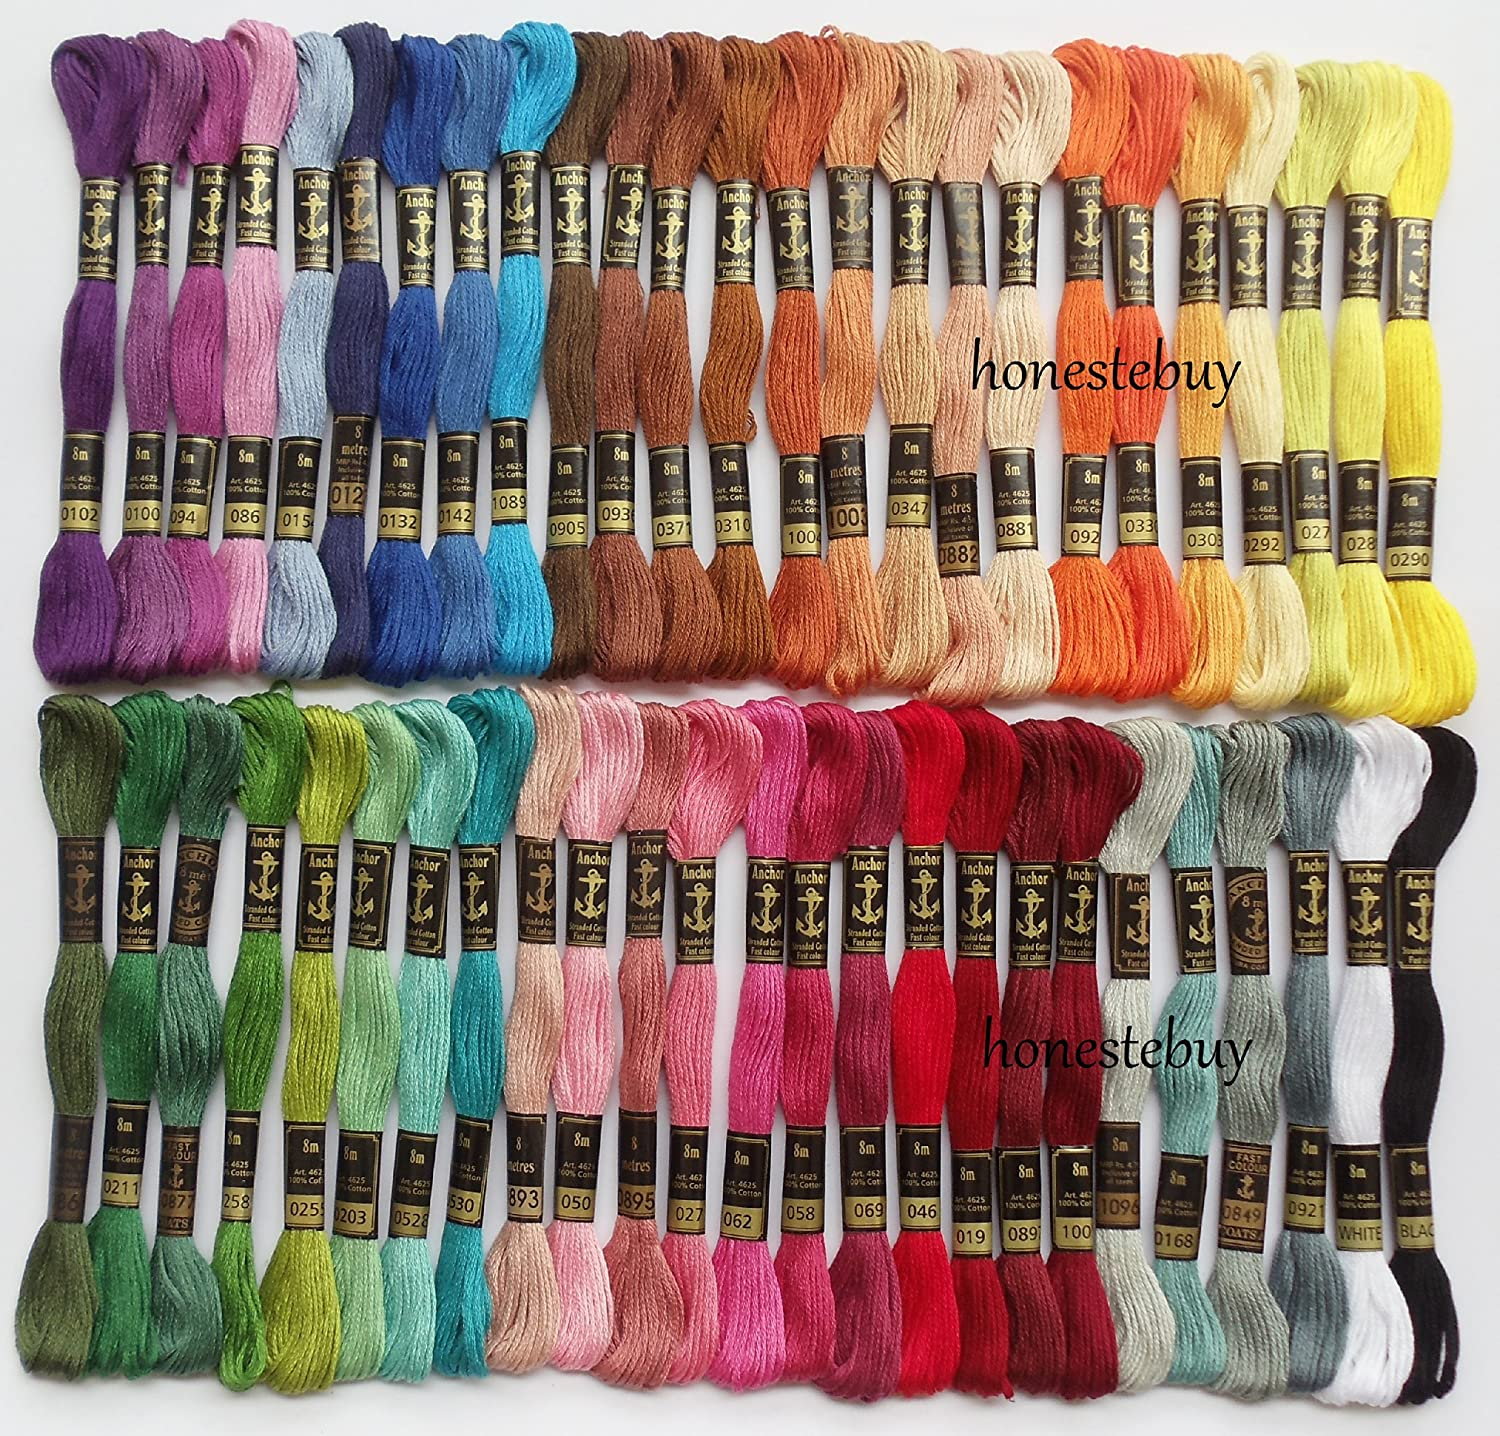 50 anchor skeins assorted embroidery cross stitch threads floss 6 50 anchor skeins assorted embroidery cross stitch threads floss 6 strands cotton amazon electronics geenschuldenfo Choice Image